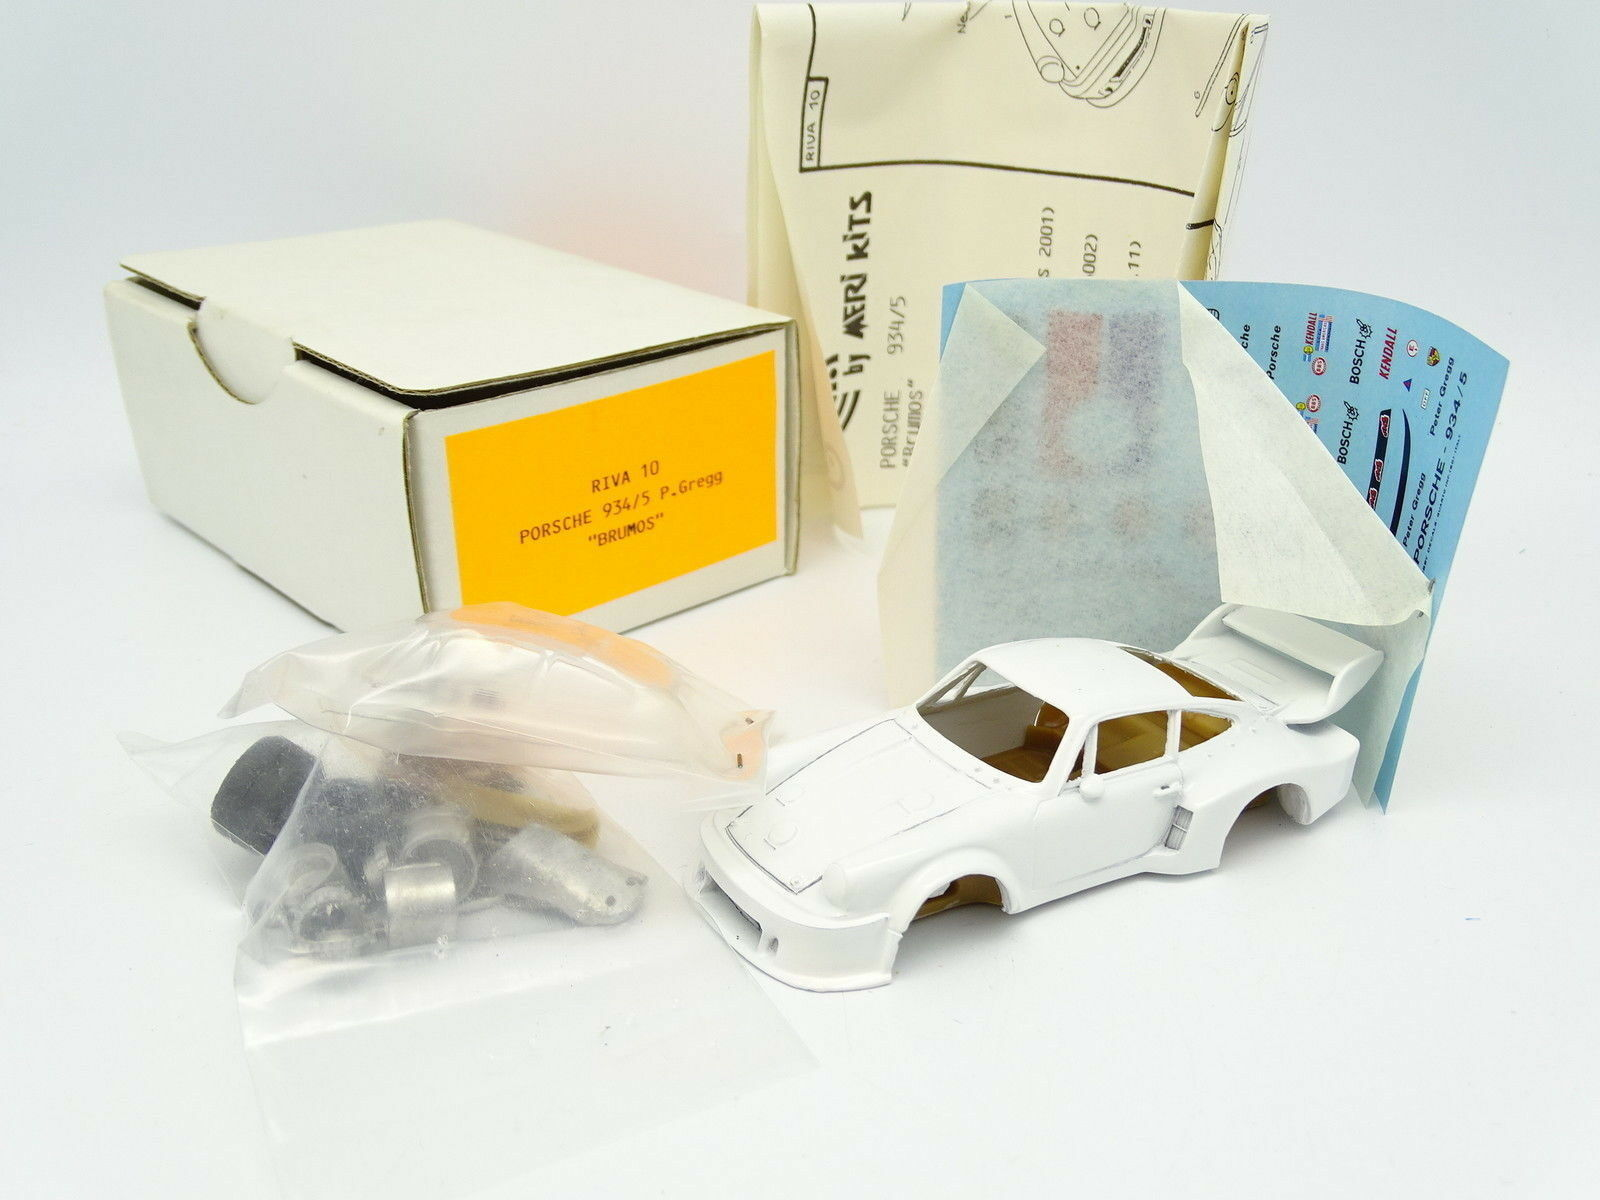 Meri riva kit to  mount 1 43 - porsche 934 5 brumos trans am champion 1977 gregg  vente discount en ligne